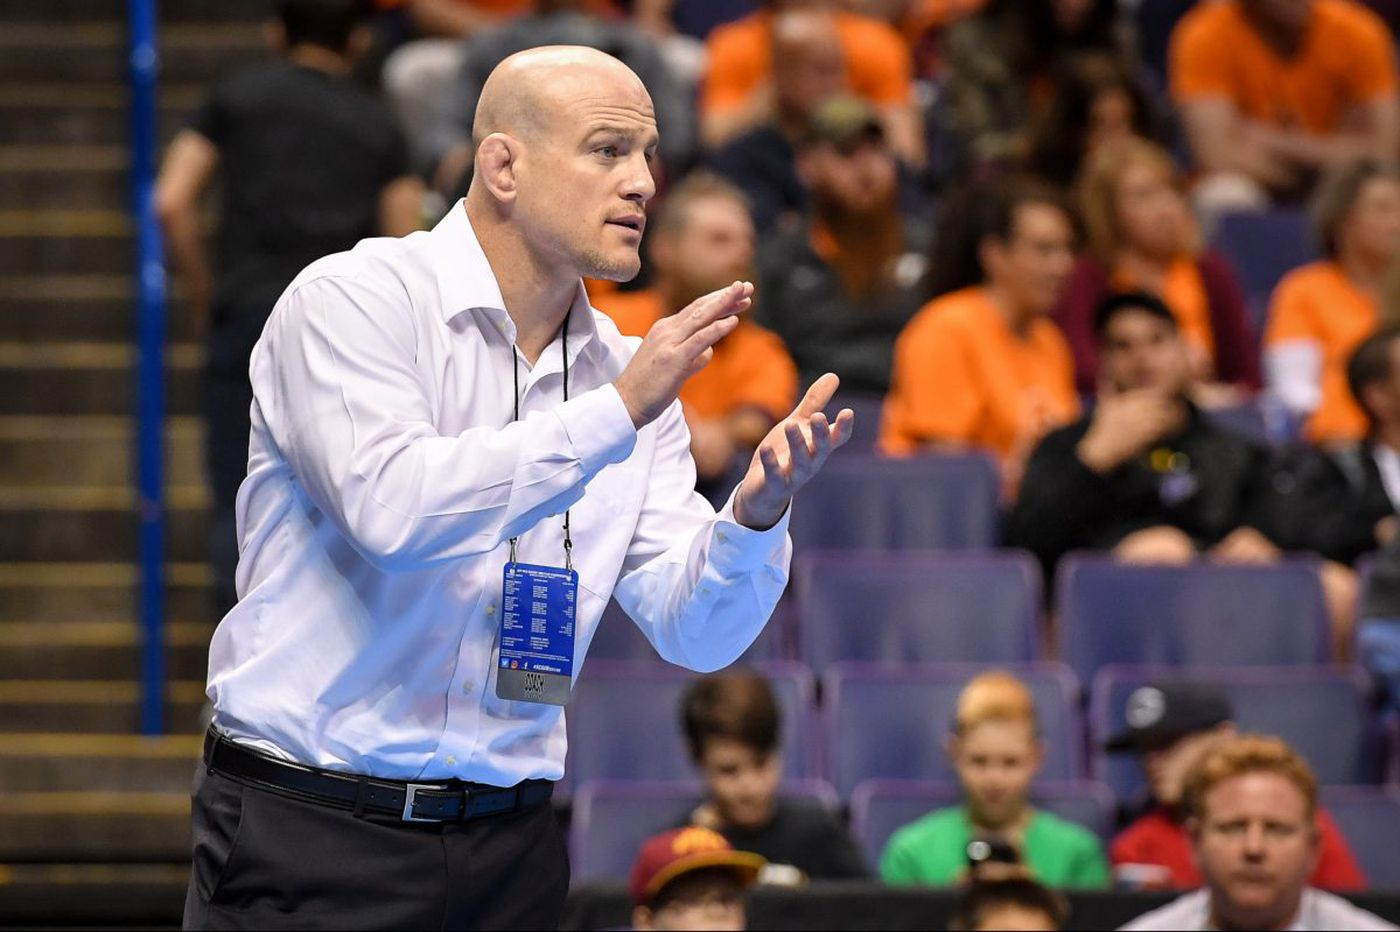 Cael Sanderson's wrestlers have a grip on Penn State fans